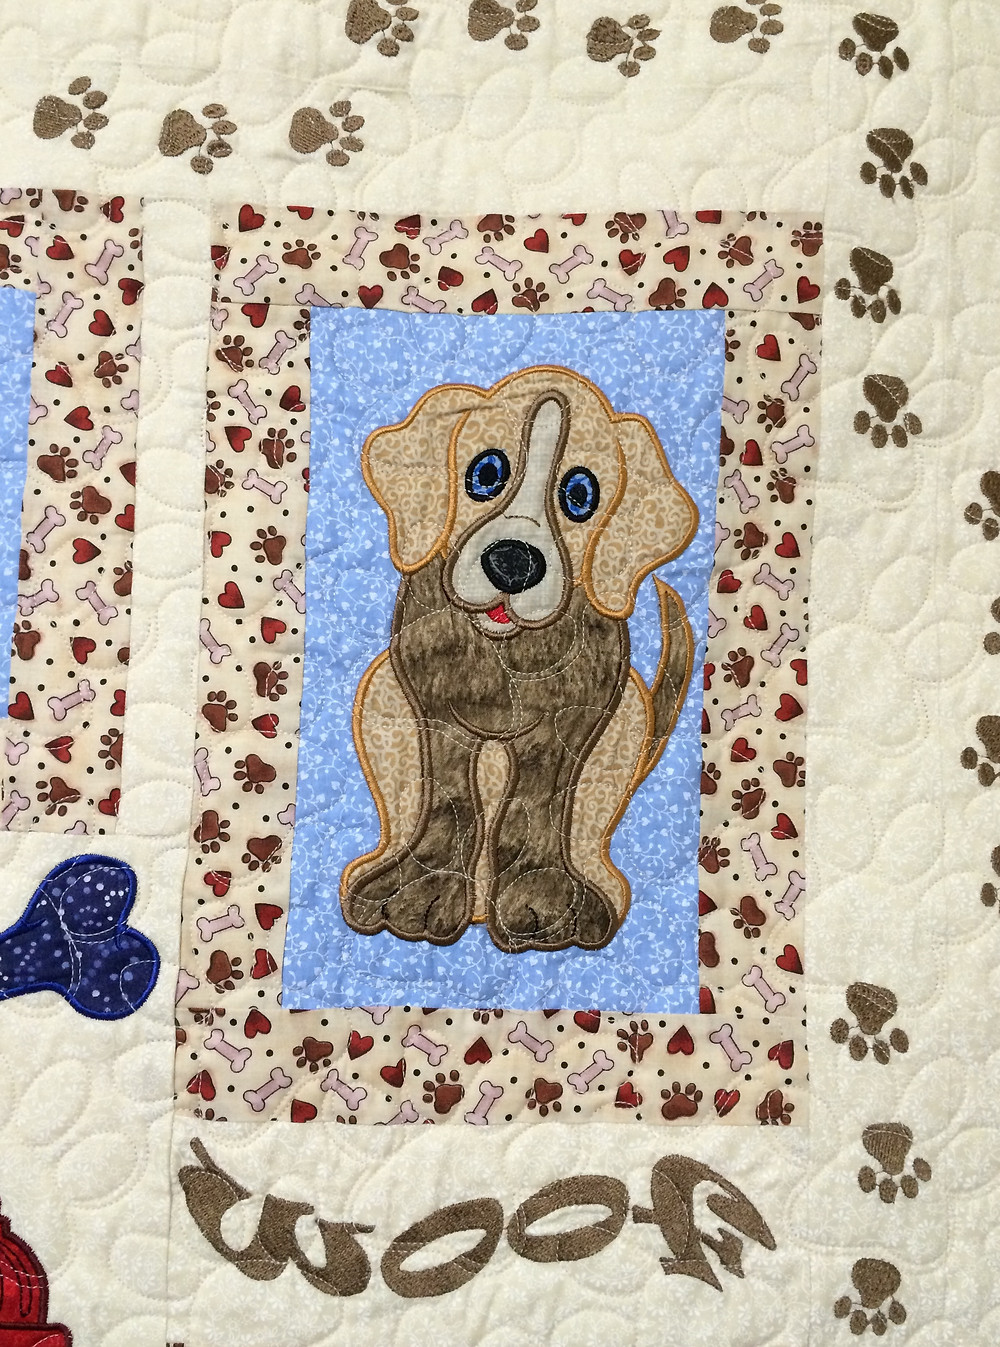 Paw quilting pattern on A Dogs Life Quilt by Patricia Foret